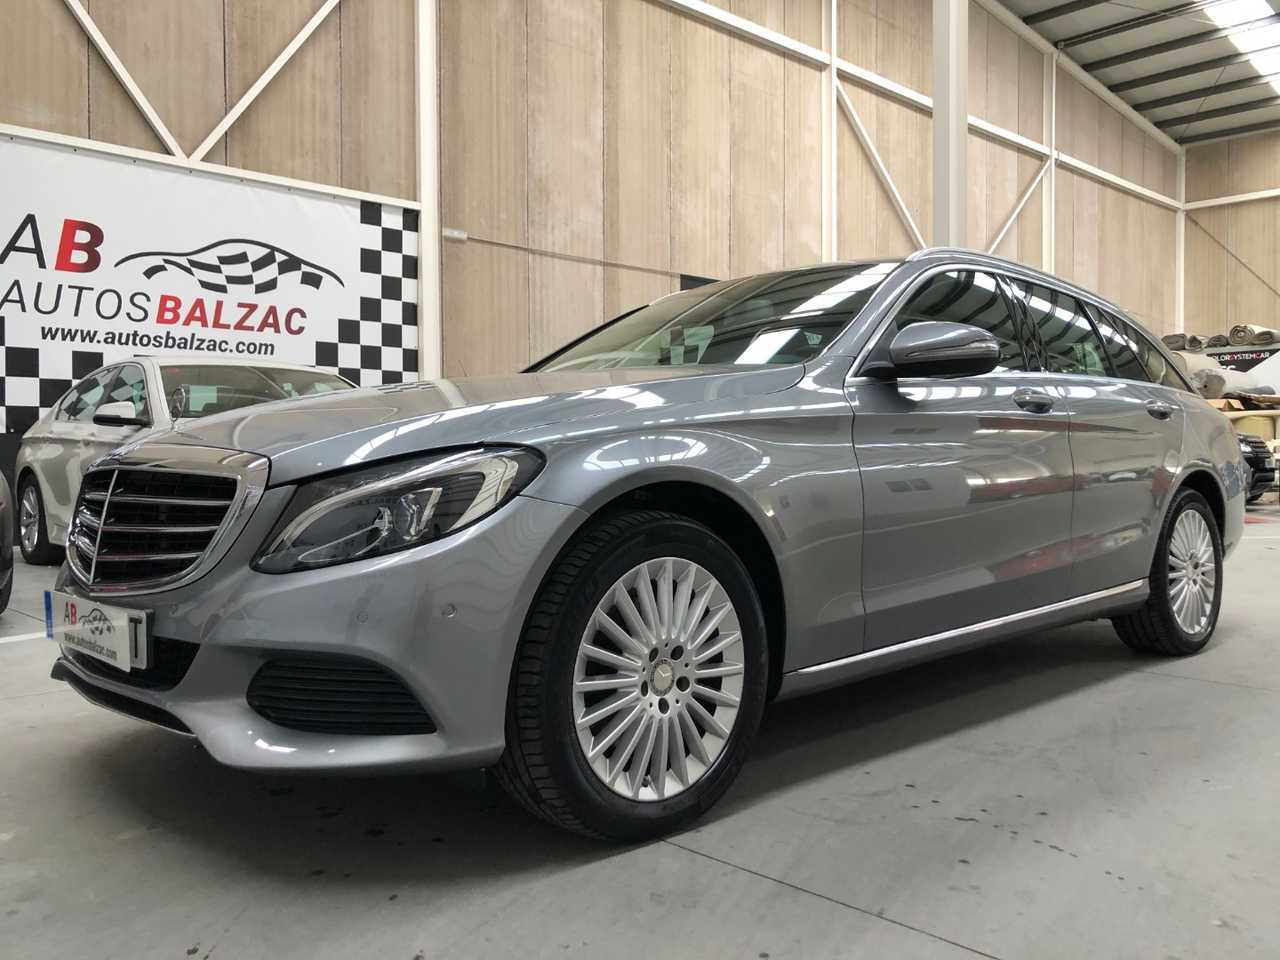 Mercedes Clase C Estate 220d Exclusive 170cvs   - Foto 1